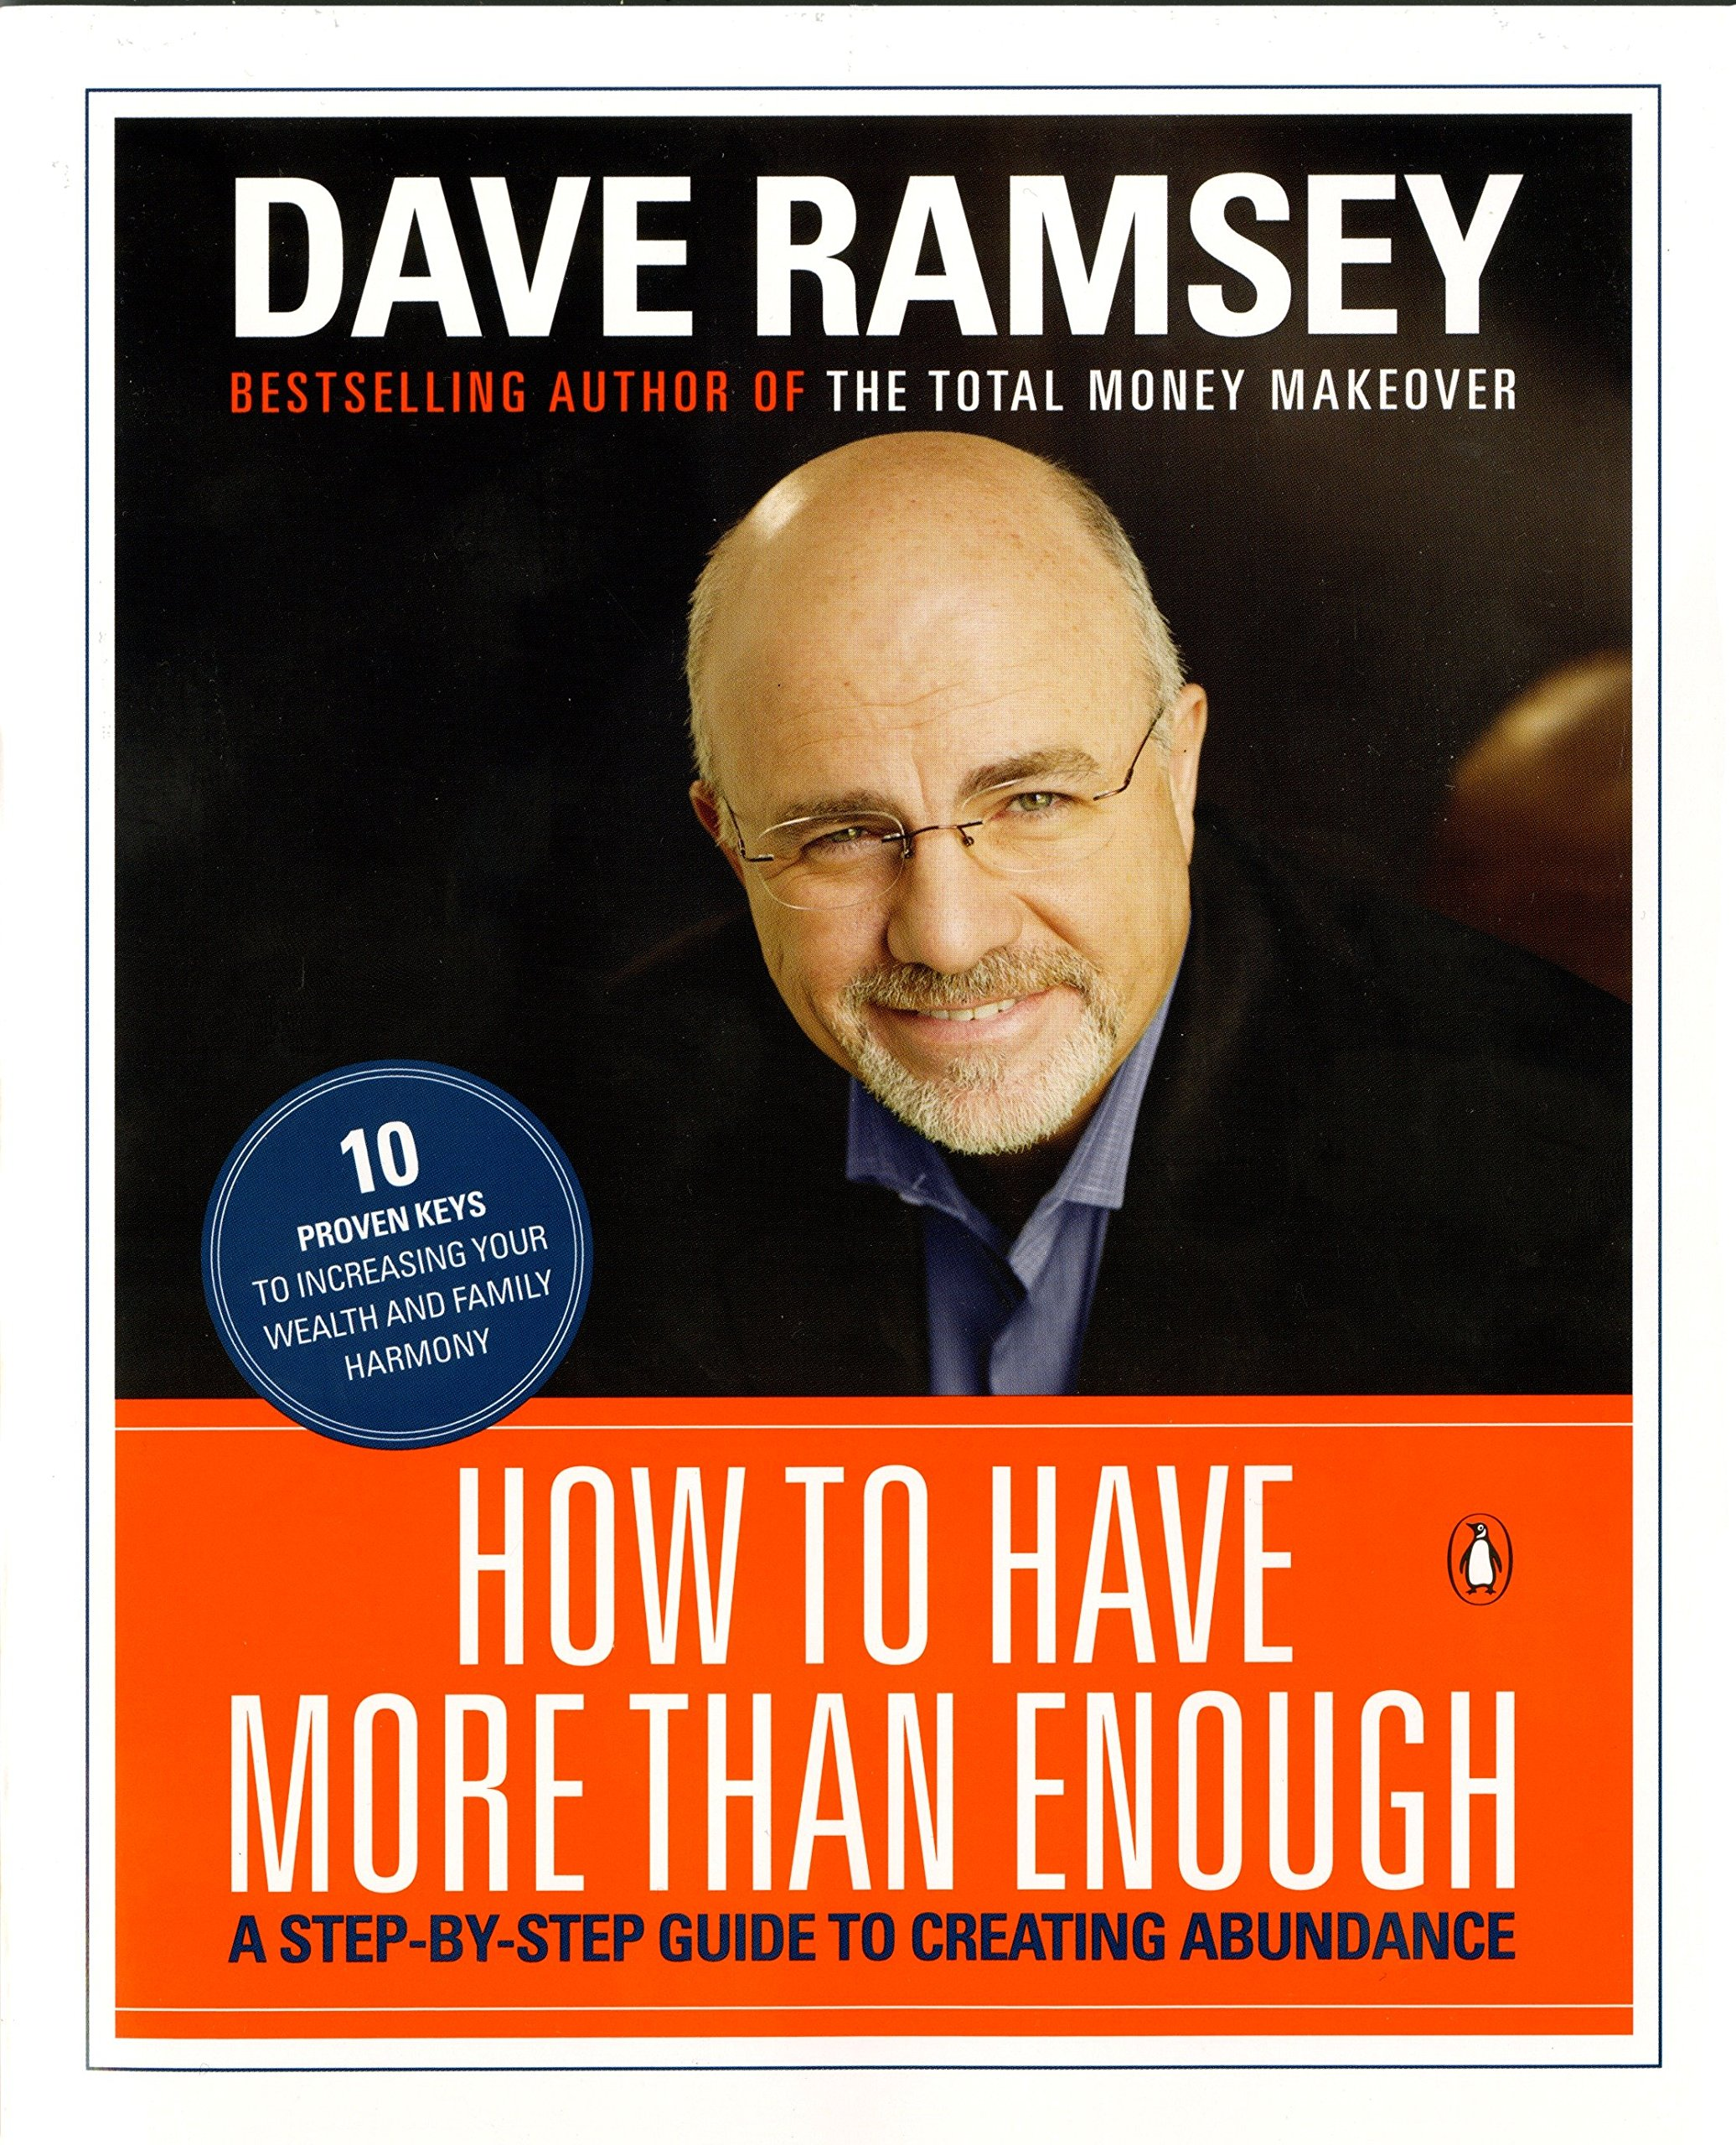 b62195563 How to Have More than Enough: A Step-by-Step Guide to Creating Abundance: Dave  Ramsey: 9780140281934: Amazon.com: Books